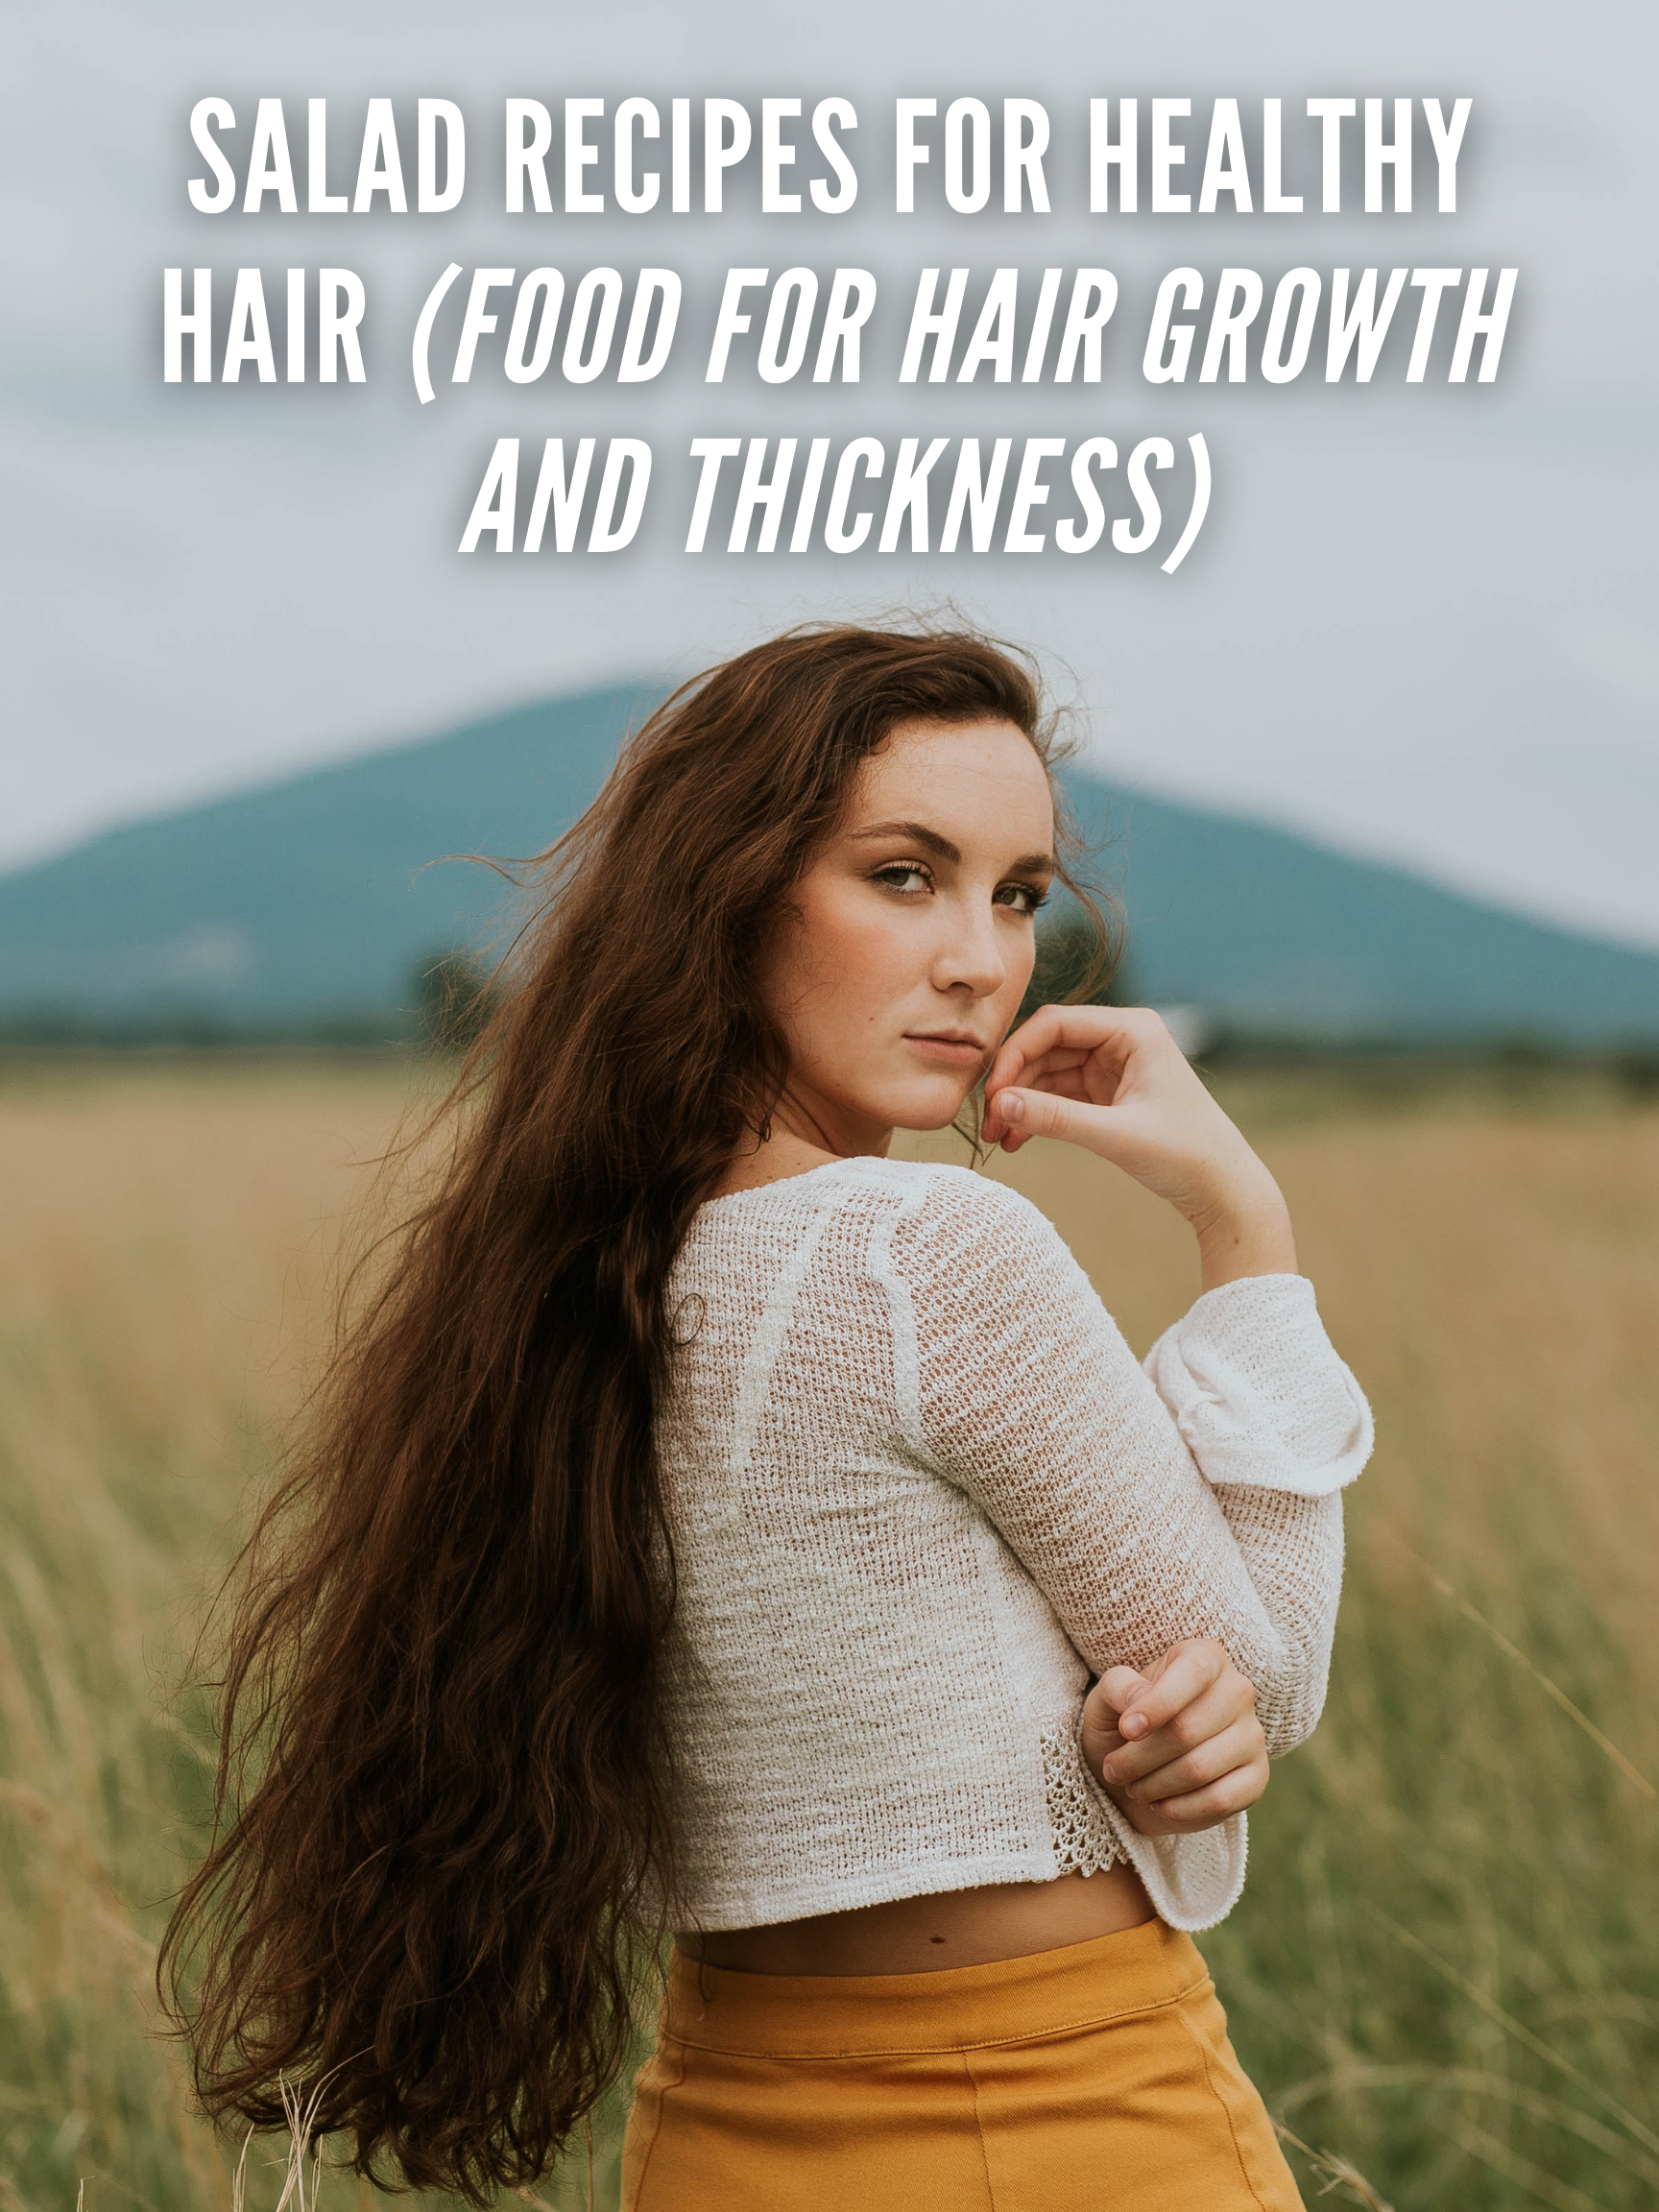 Salad Recipes for Healthy Hair